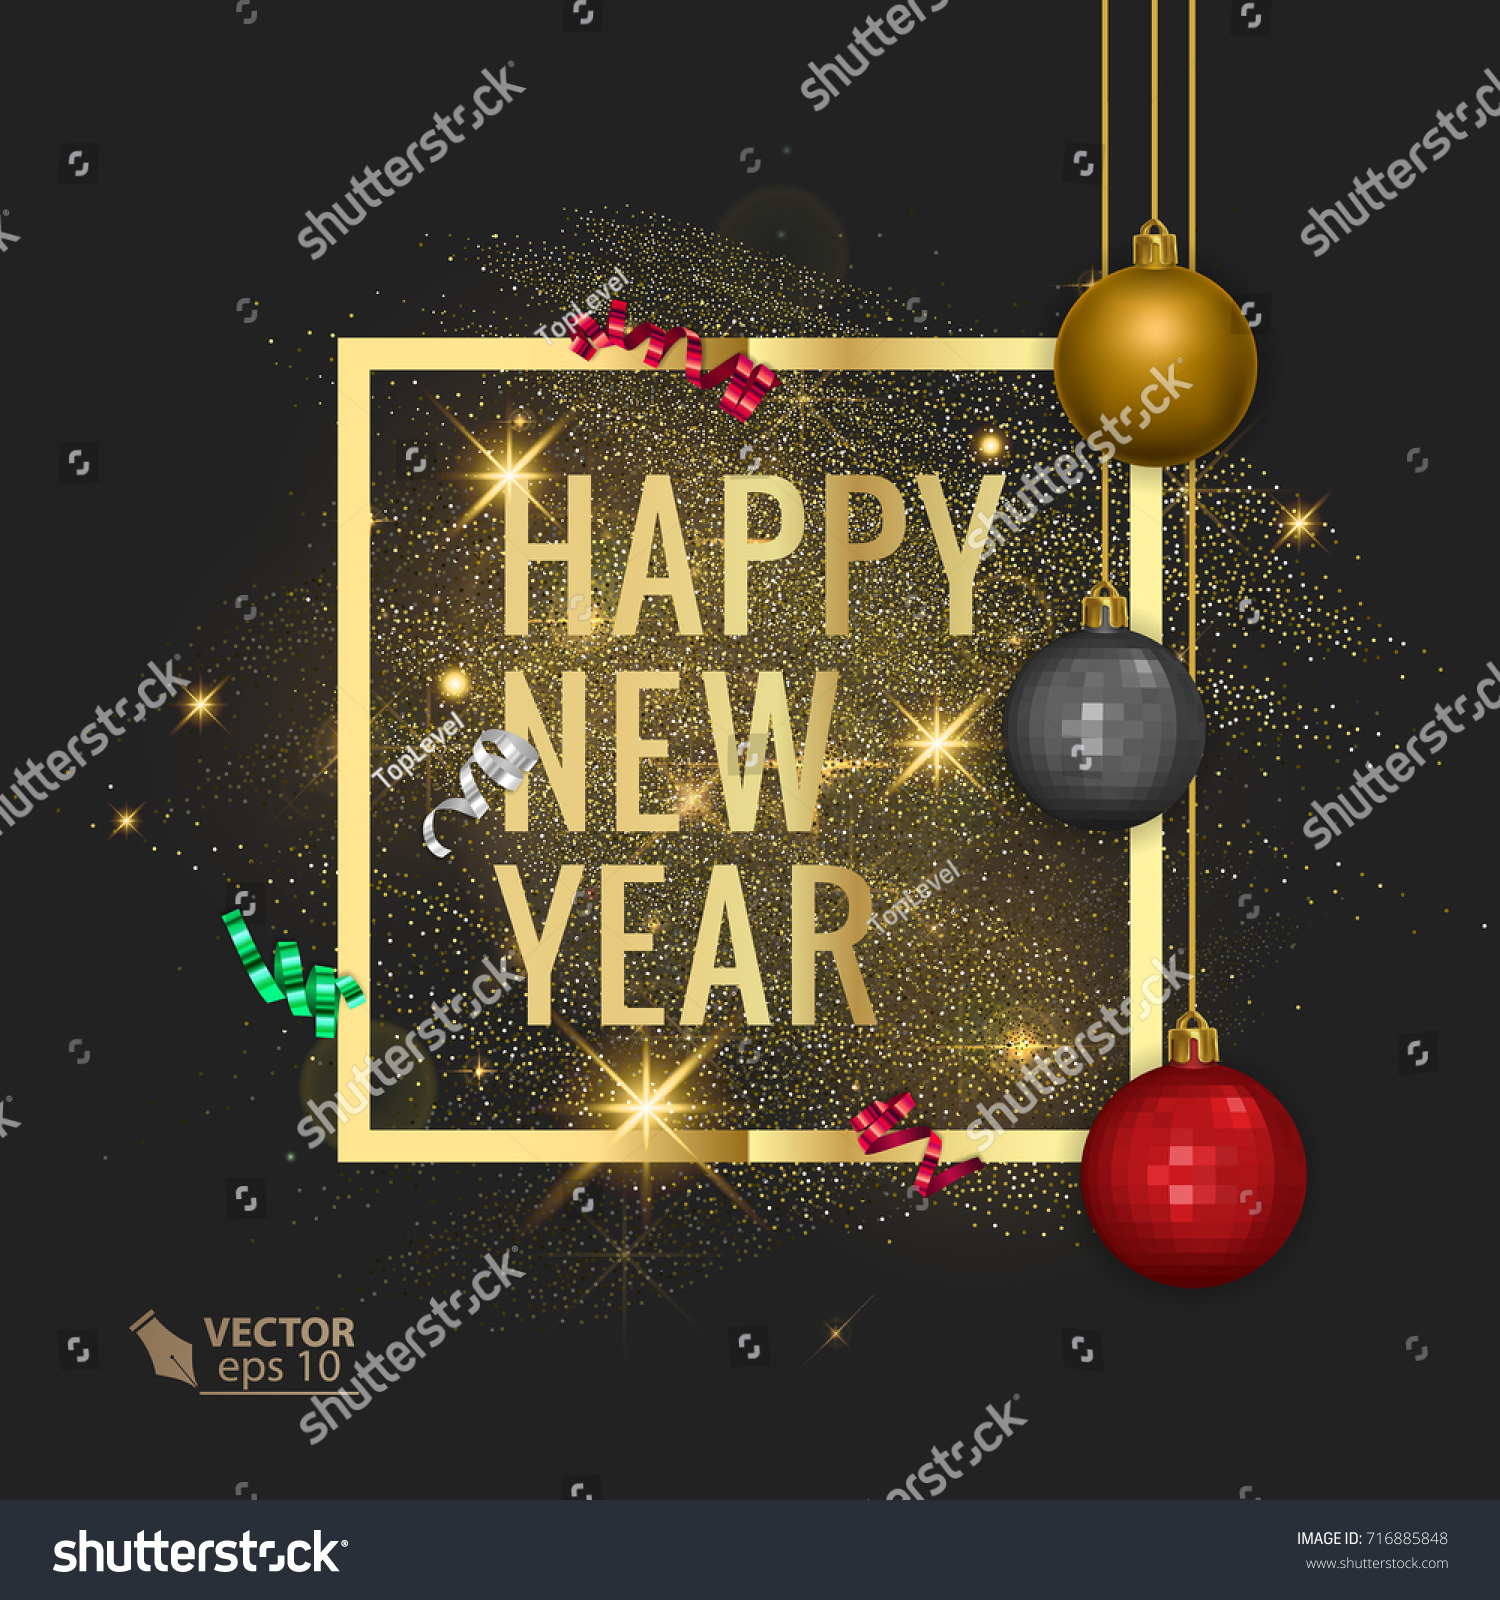 merry christmas and happy new year 2018 greeting card vector eps 10 illustration